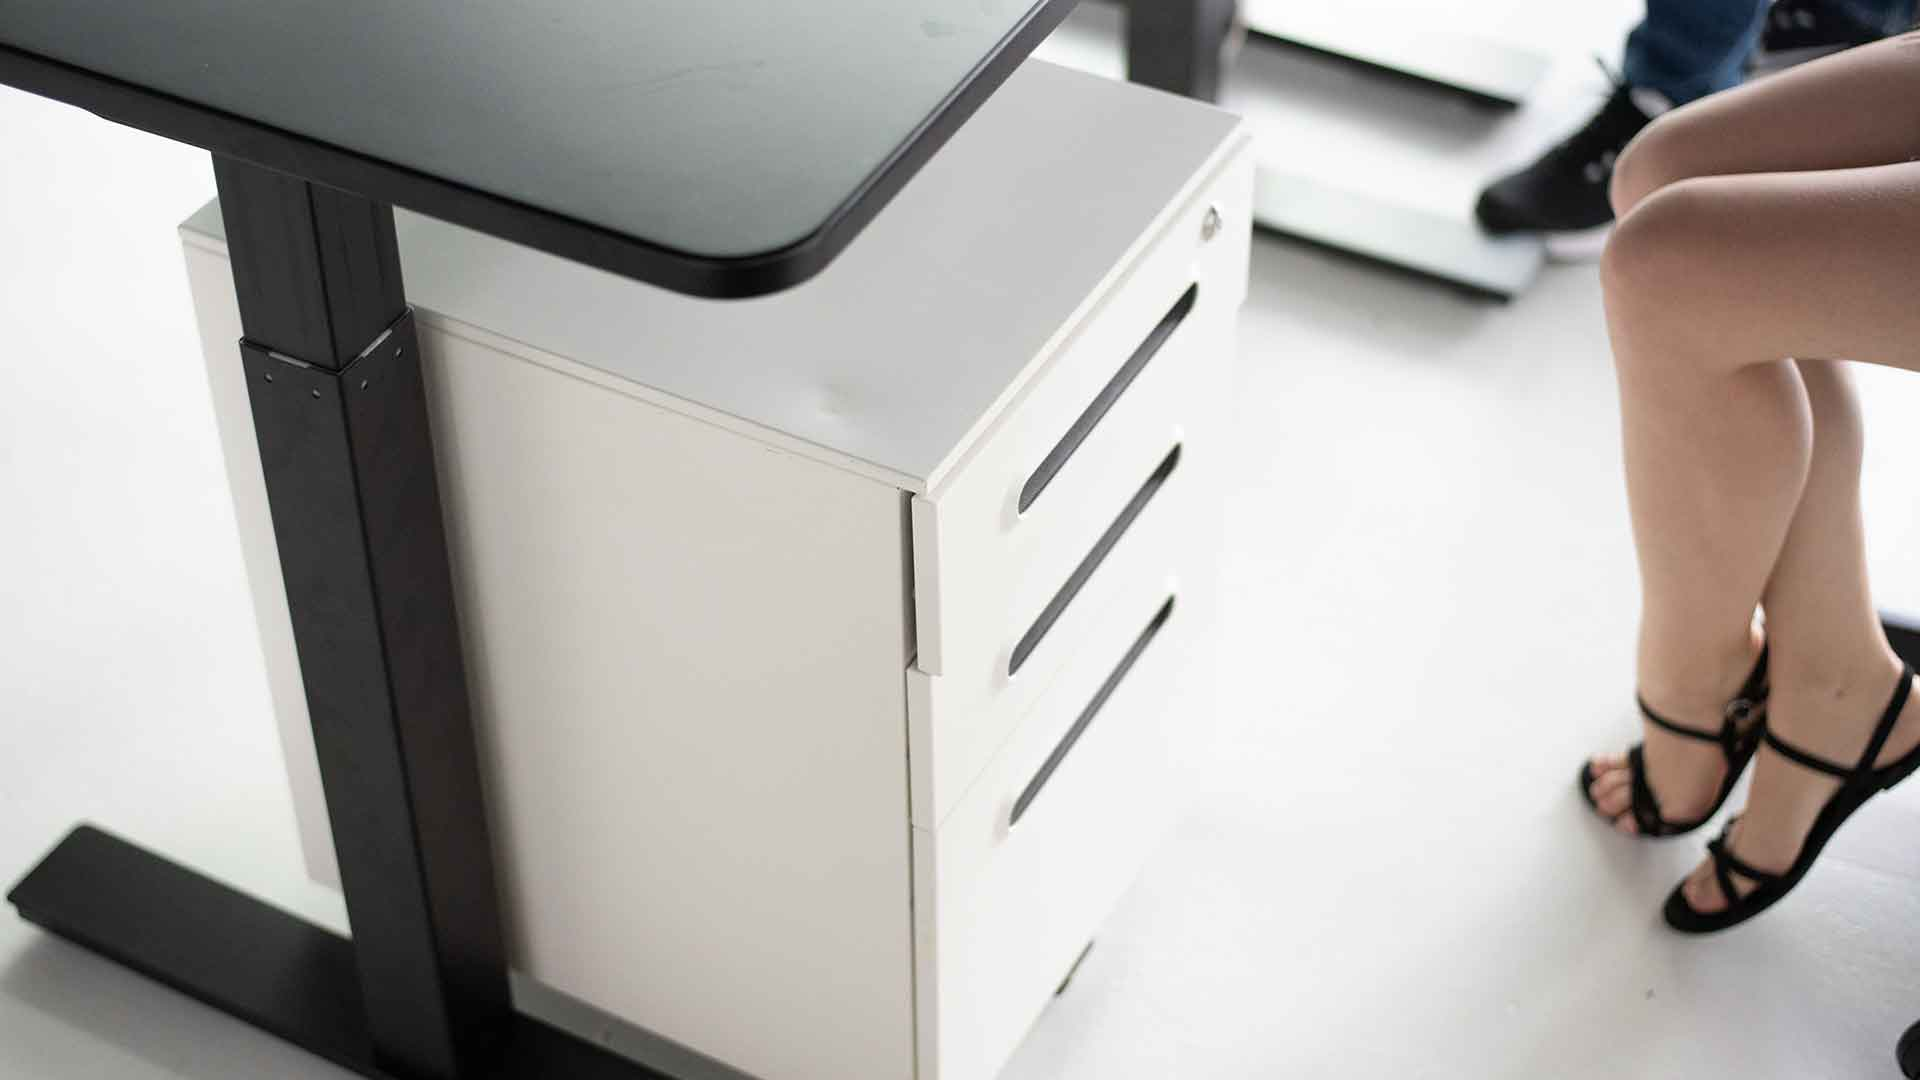 Remove Drawers from Filing Cabinet